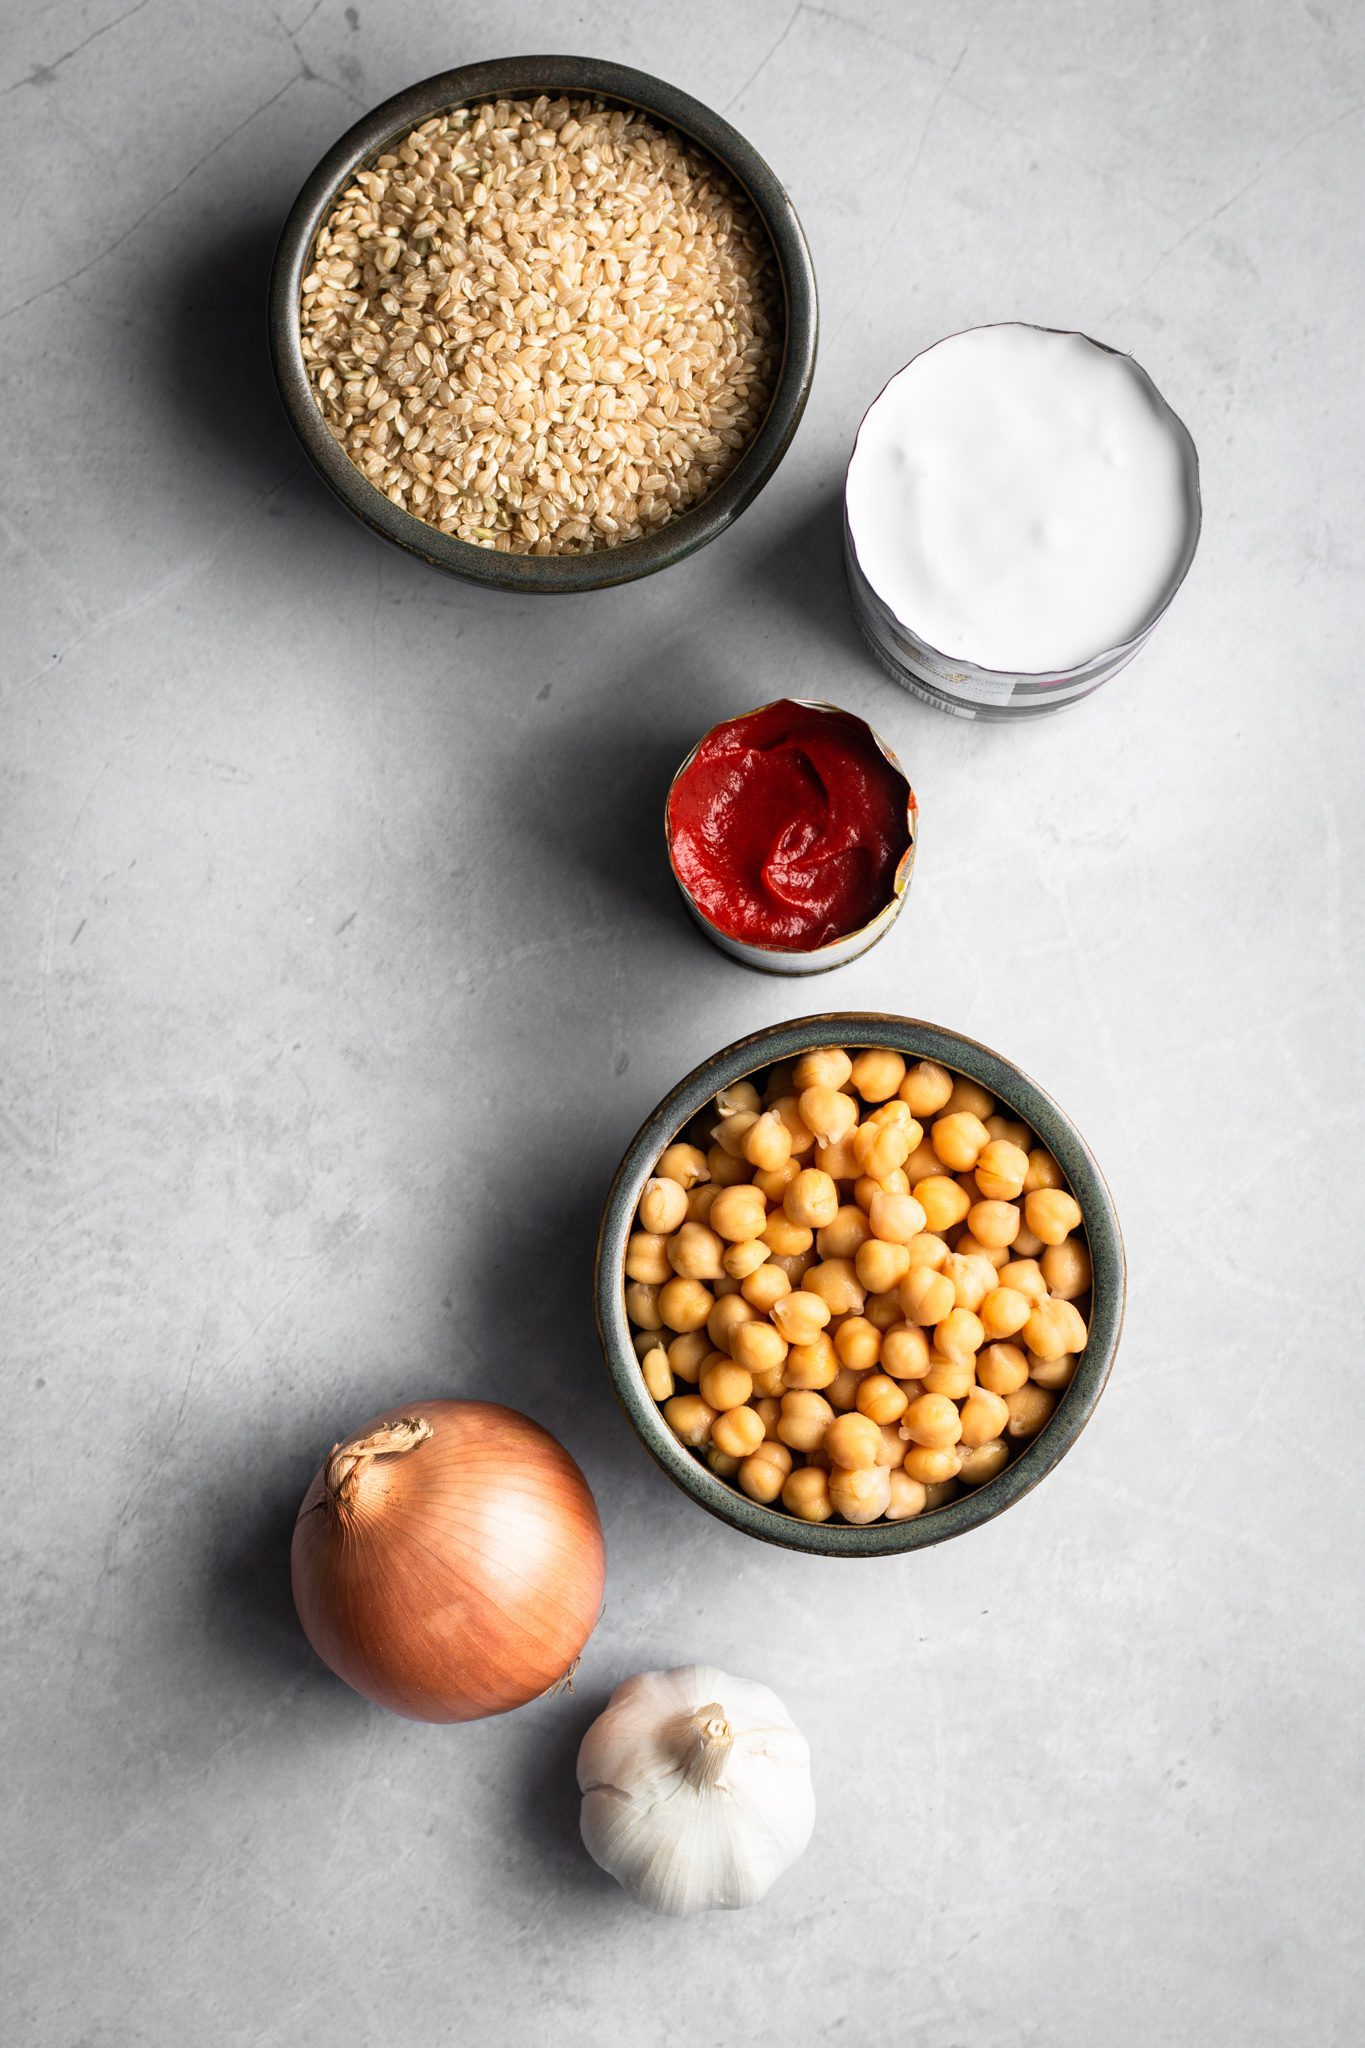 rice, chickpeas, coconut milk, tomato paste, onion and garlic from the top